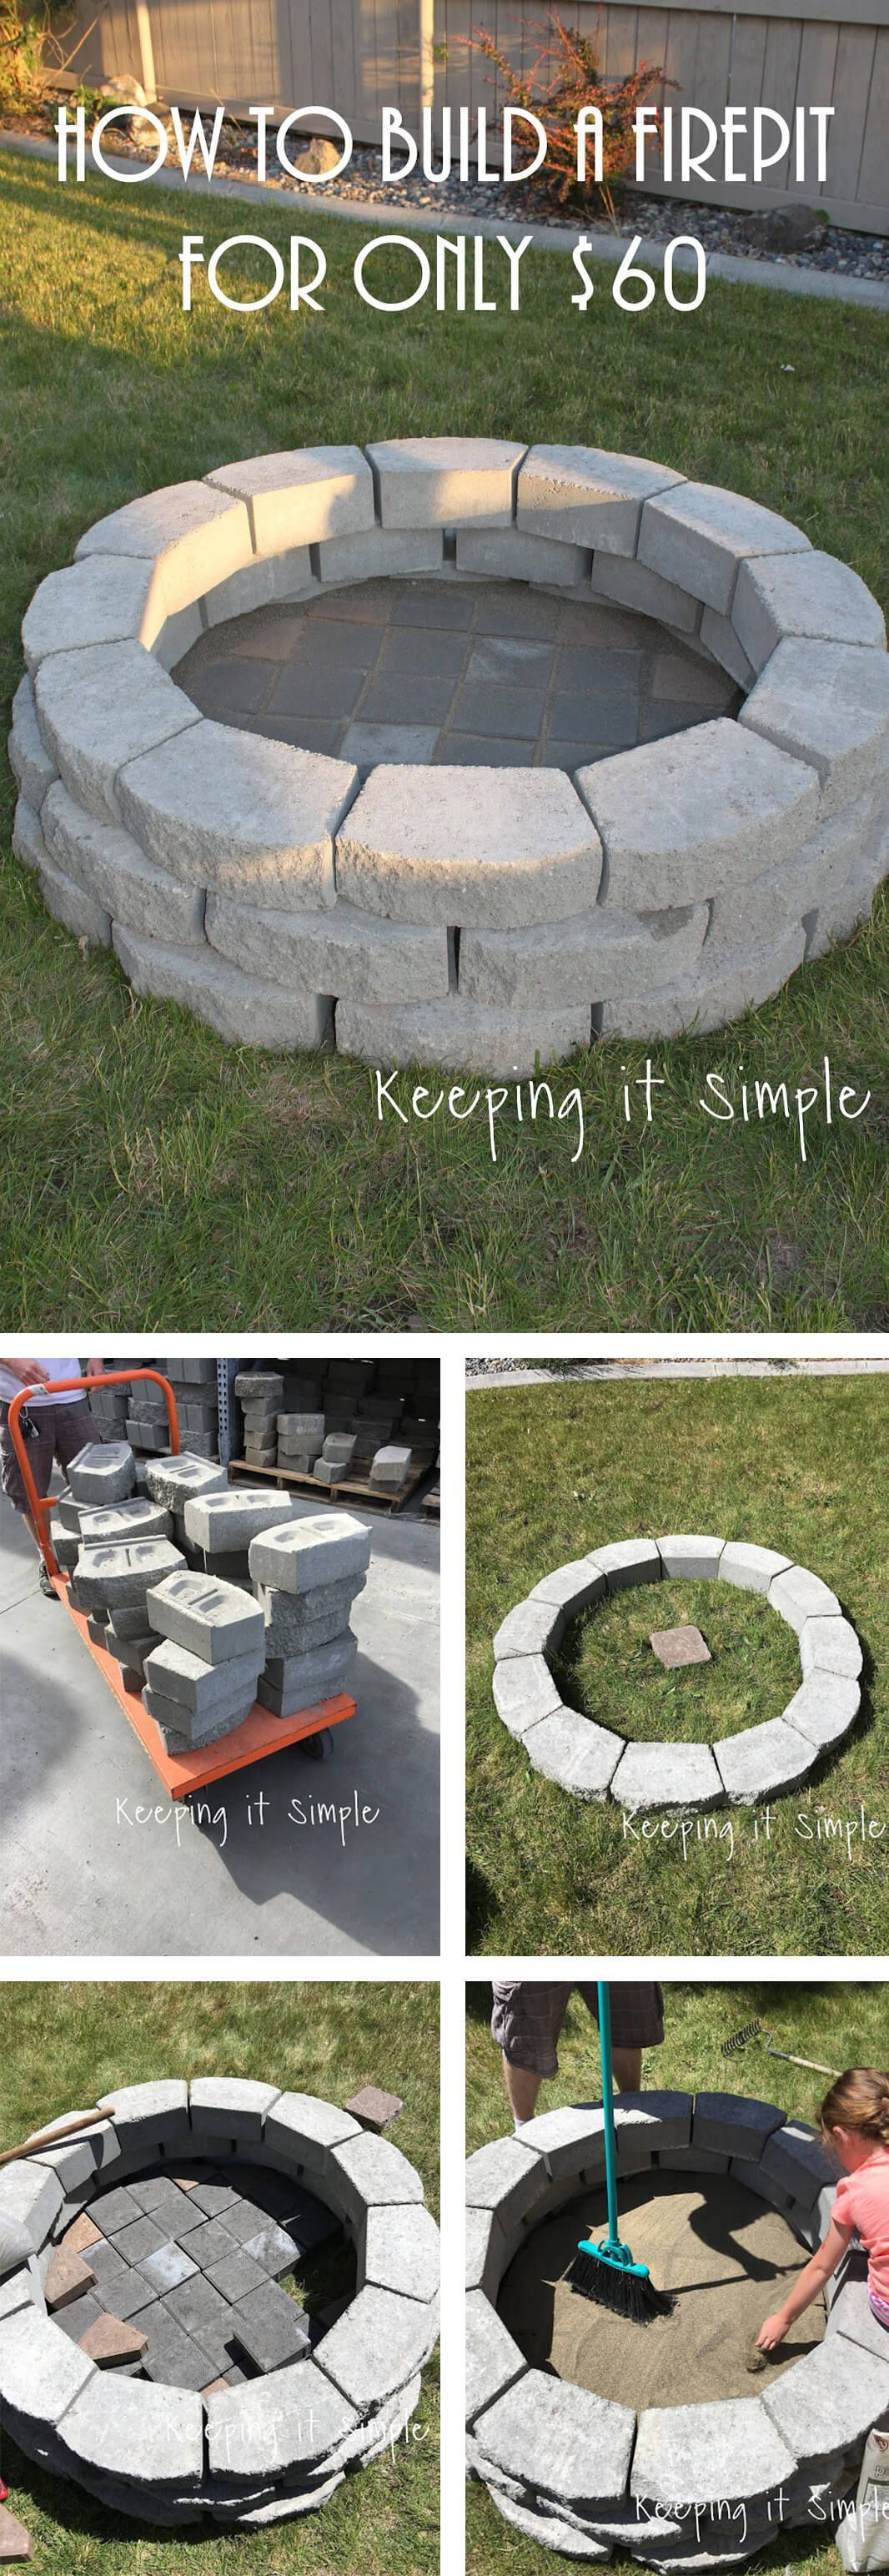 20+ Attractive DIY Firepit Ideas -   12 garden design Rectangle fire pits ideas